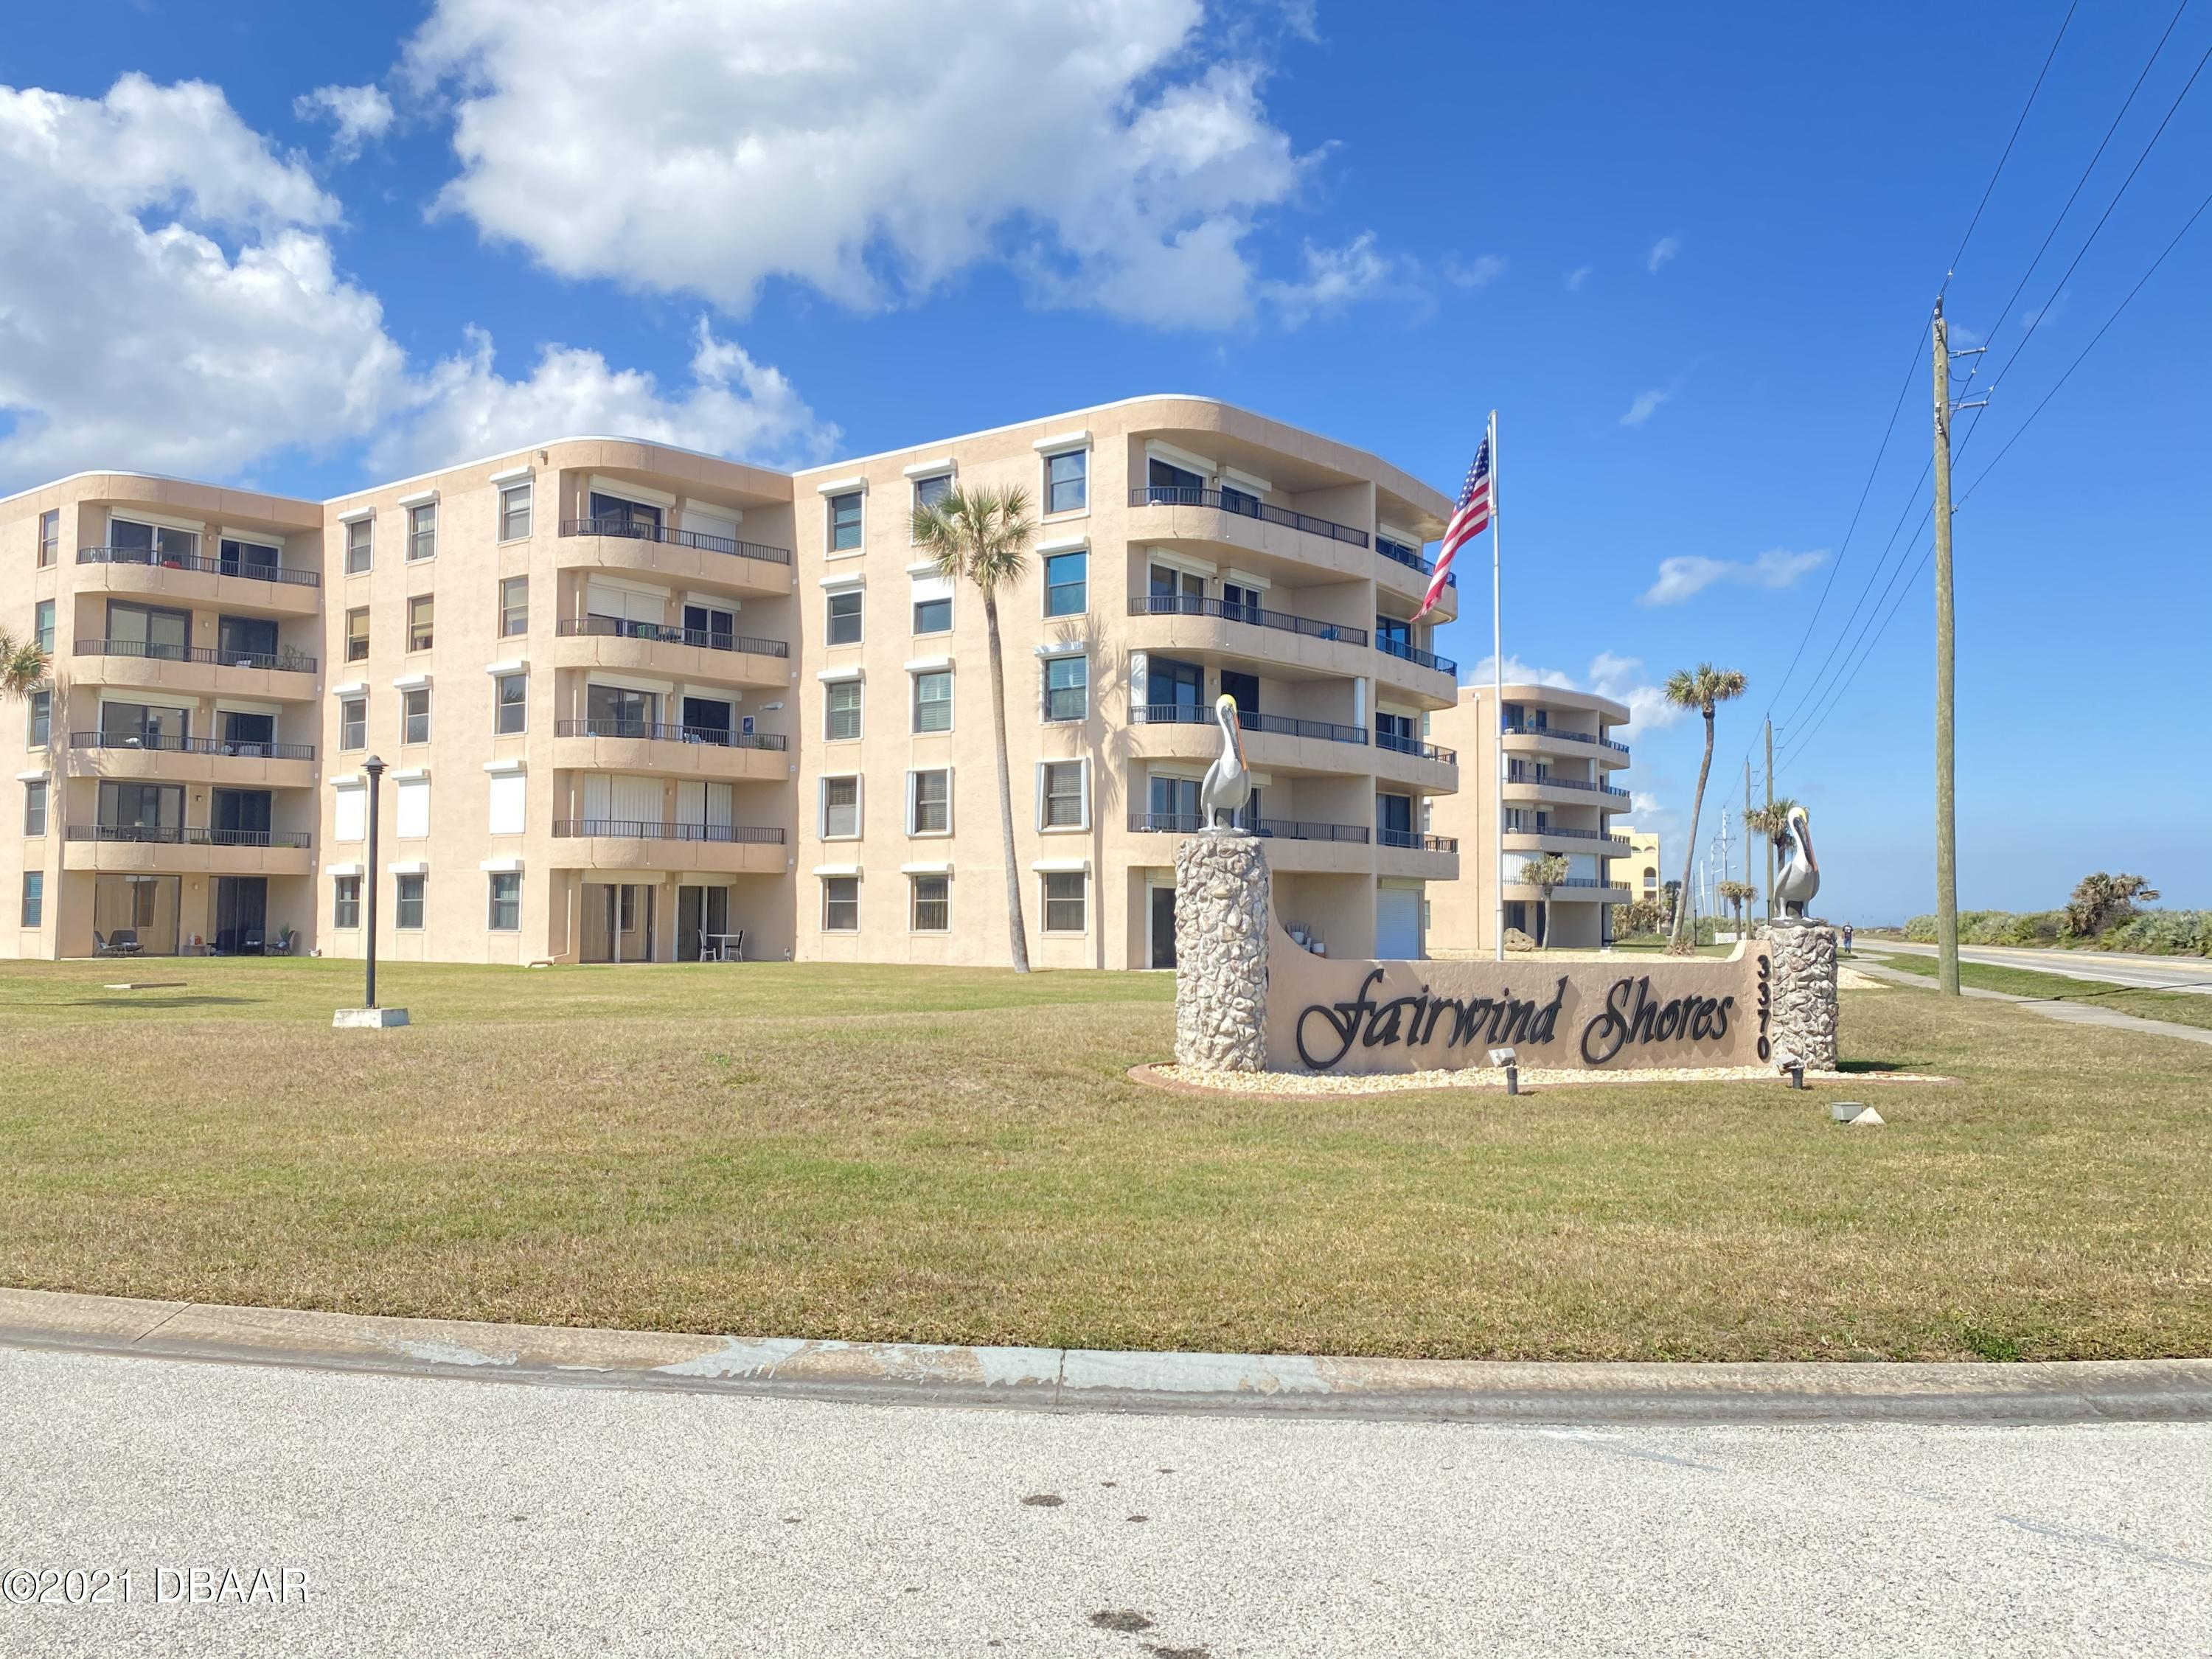 Listing Details for 3360 Ocean Shore Boulevard 1030, Ormond Beach, FL 32176